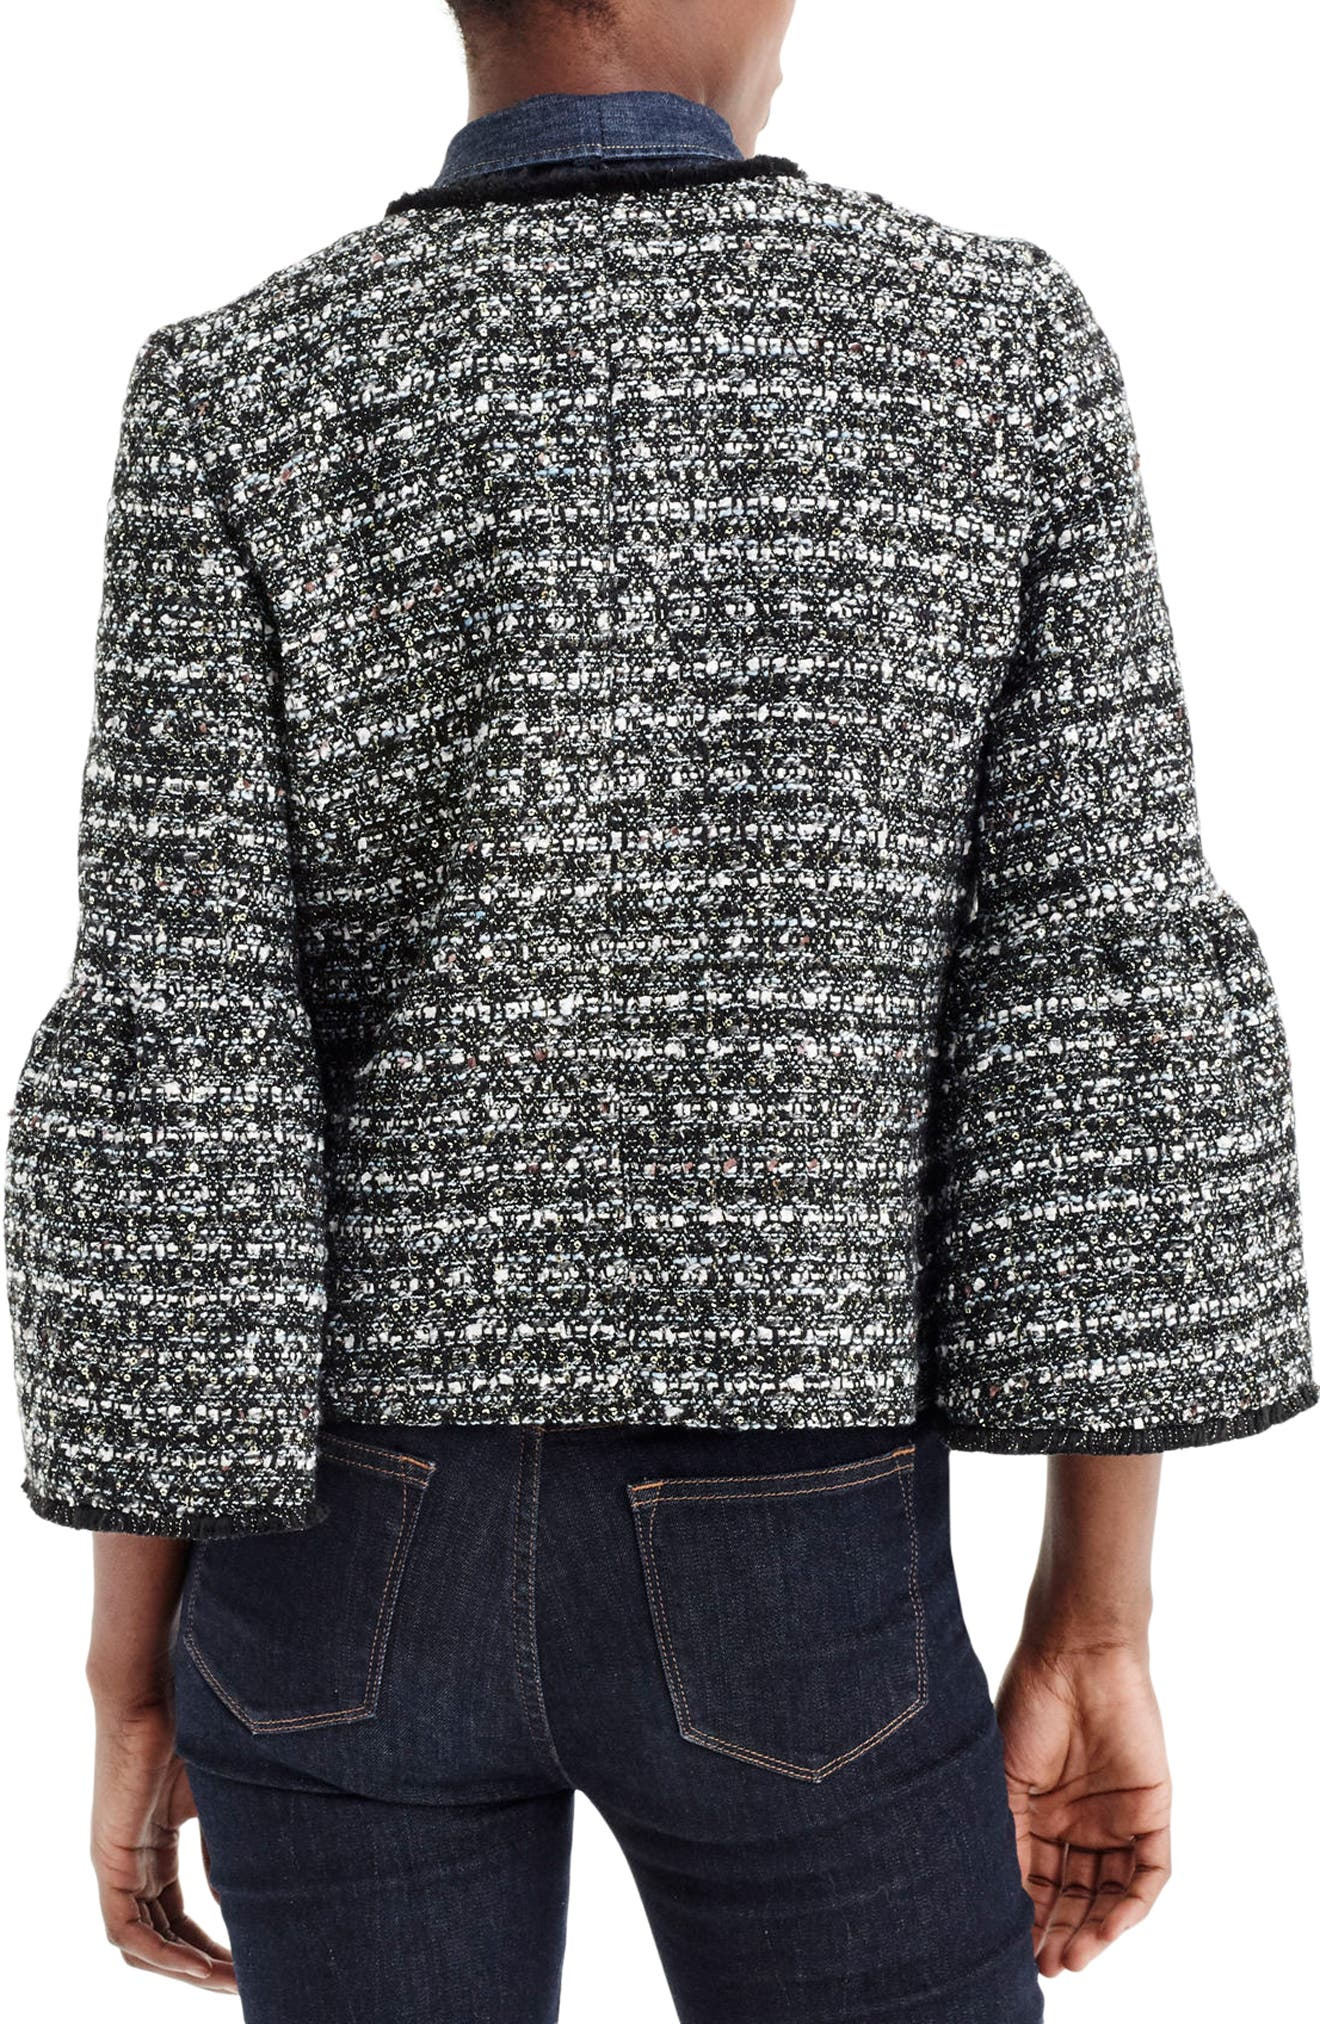 J.Crew Belle Sequin Tweed Jacket,                             Alternate thumbnail 2, color,                             Black Multi